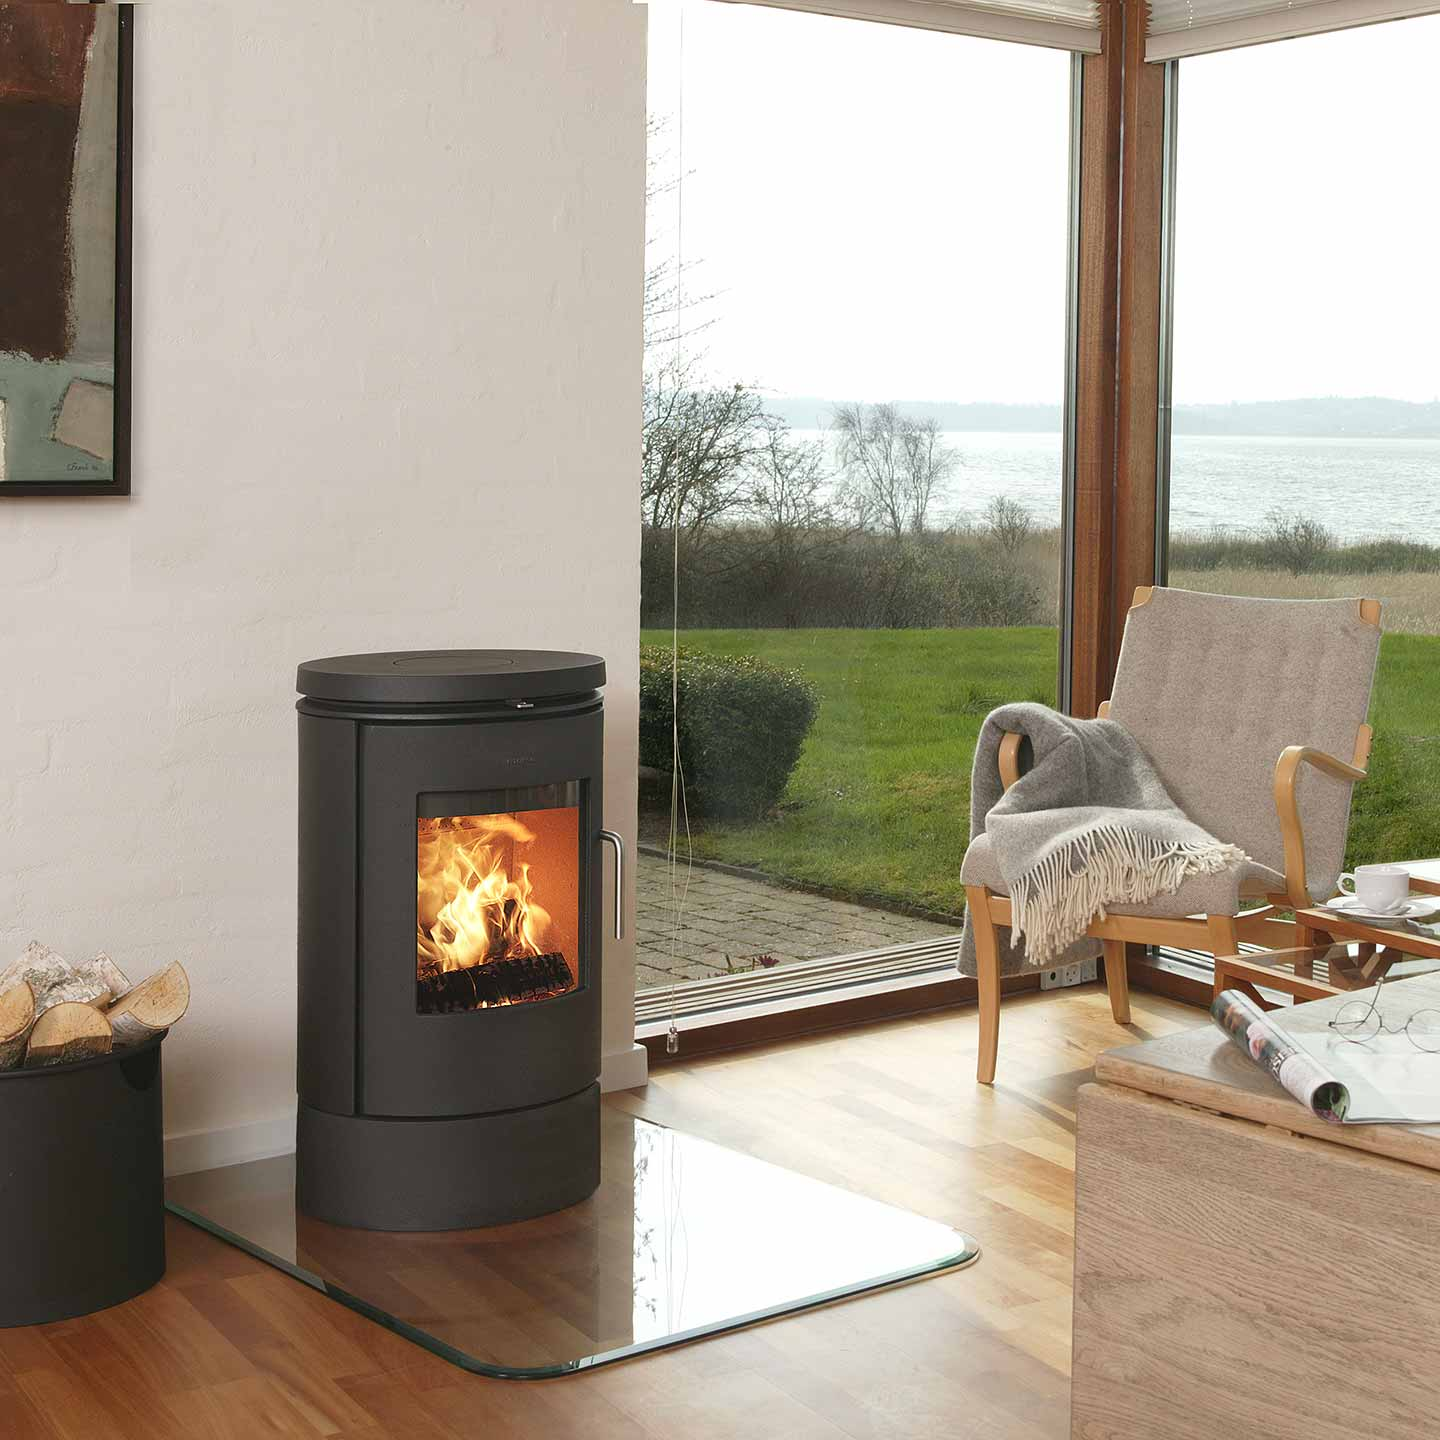 Morso 6140 Wood Burning Stove The Stove Site Approved